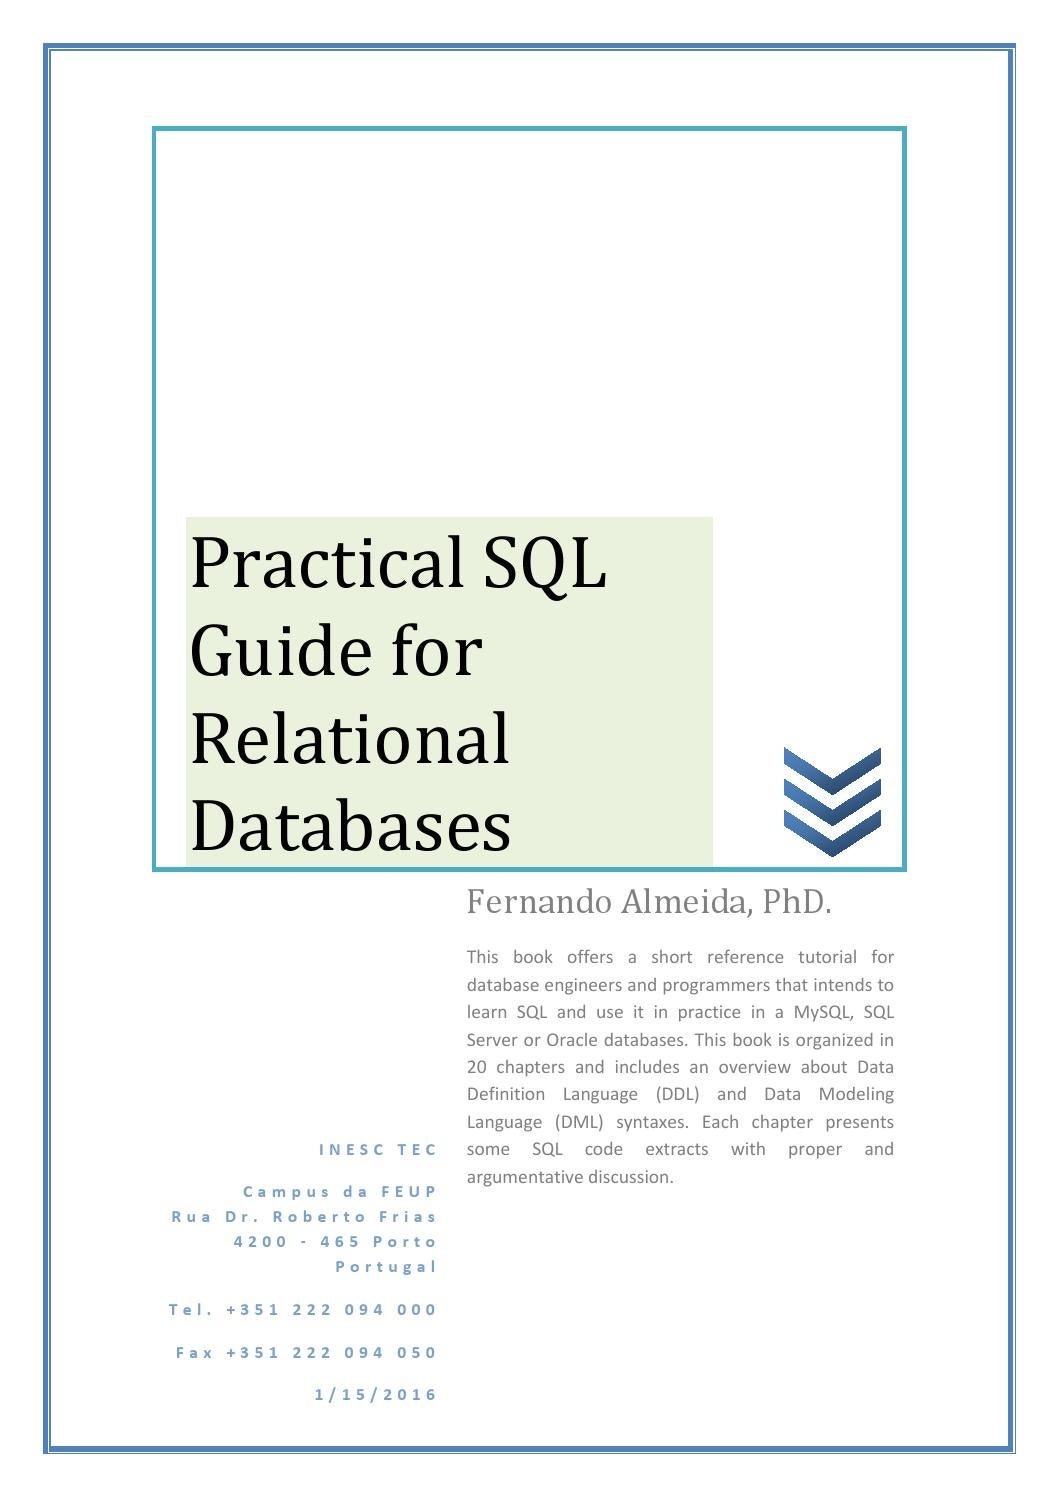 Practical sql guide for relational databases by fernando almeida practical sql guide for relational databases by fernando almeida issuu baditri Image collections